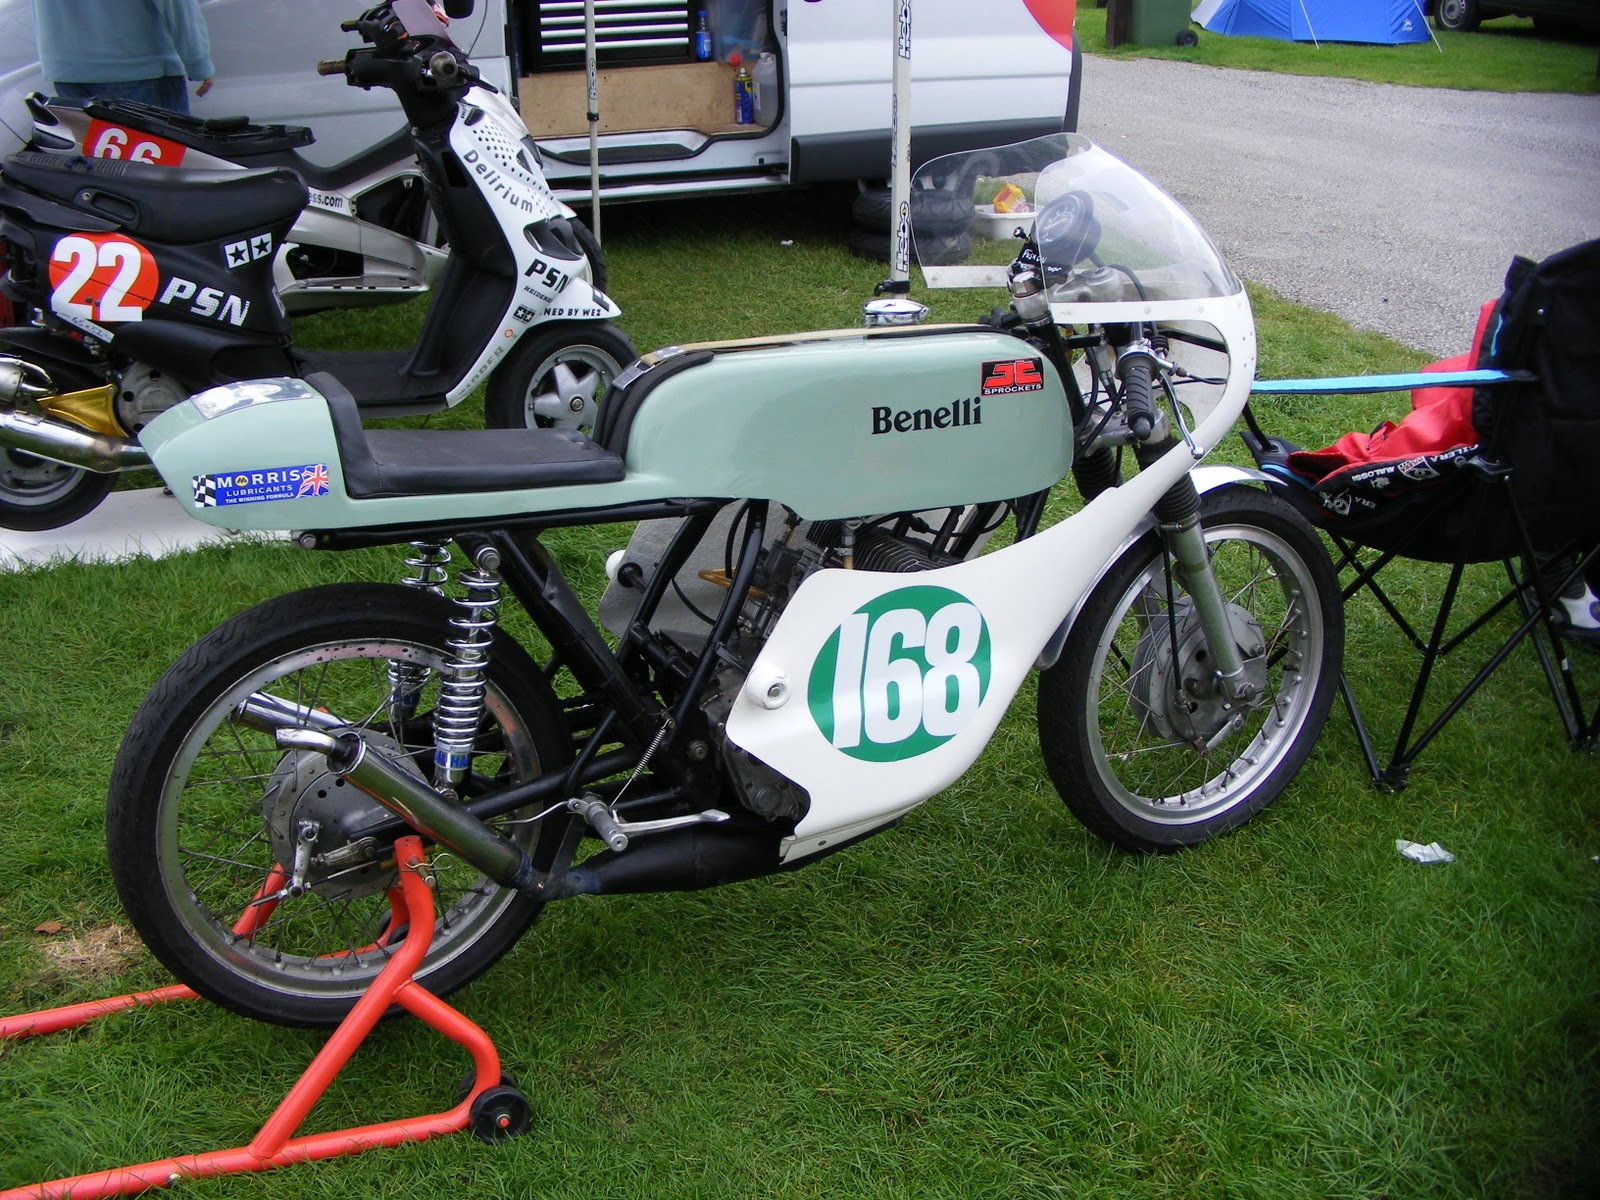 Ducati Single Racing: Historic Racing Cadwell Park, Sept 2011